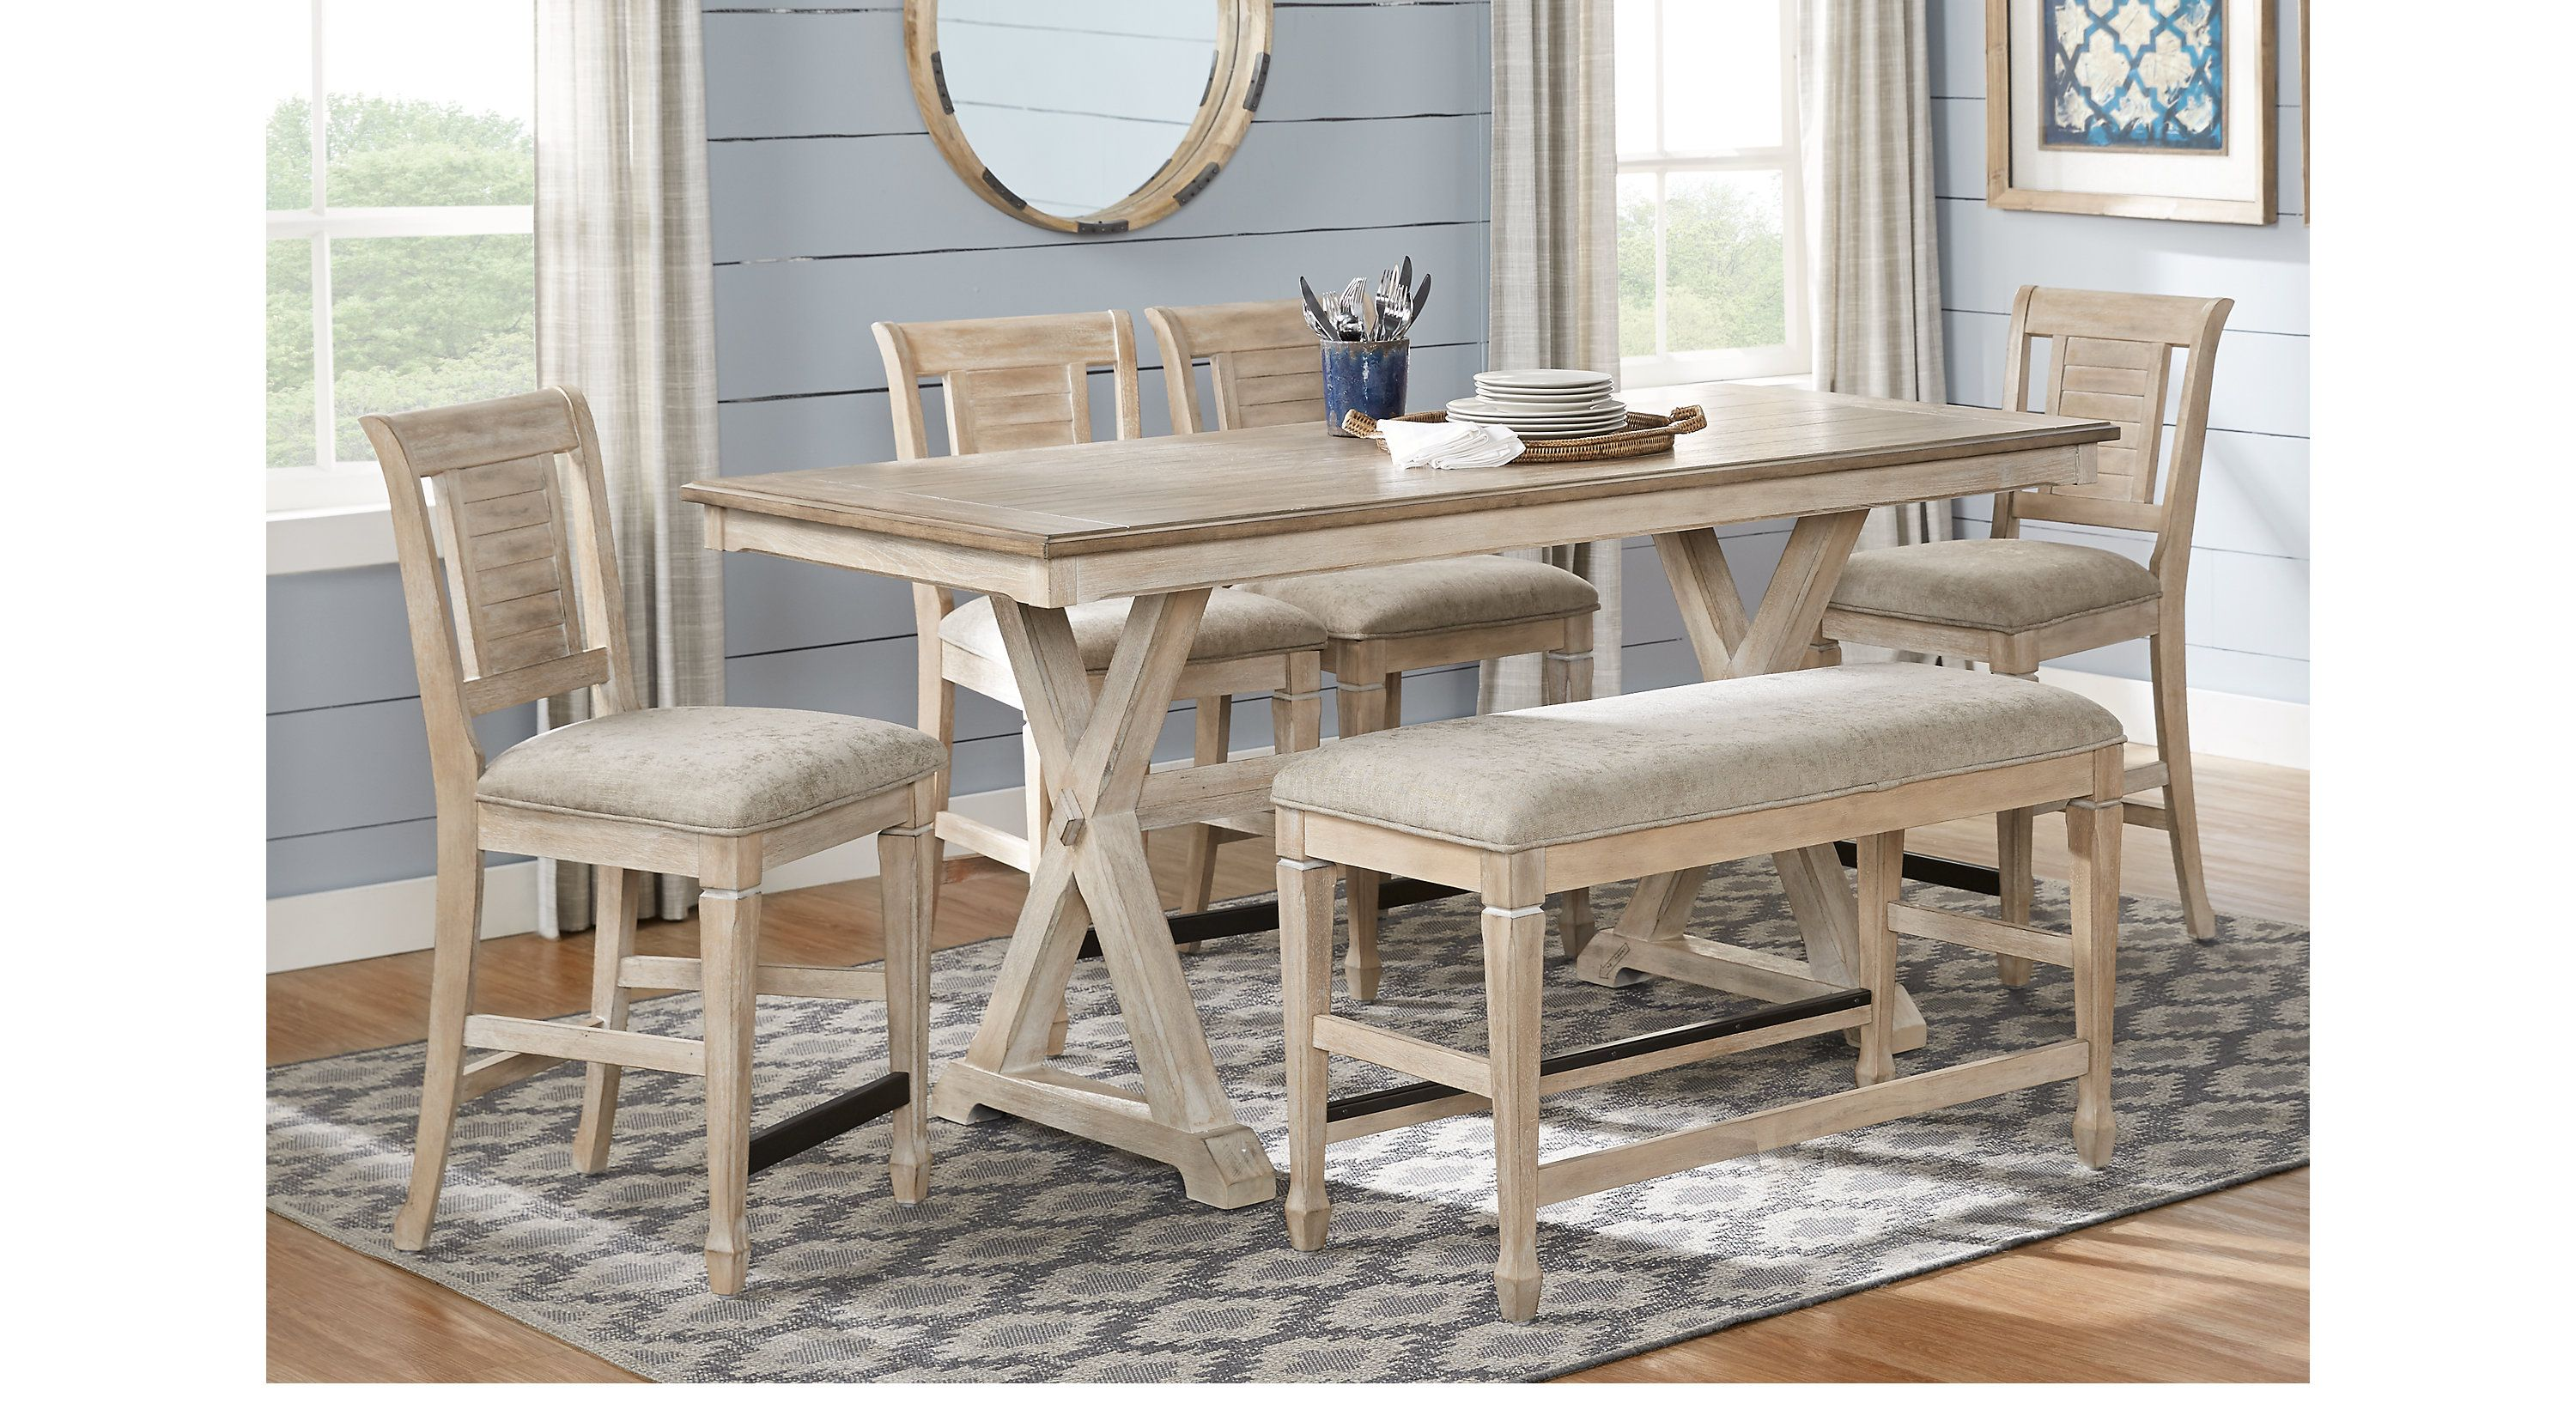 Nantucket Breeze Bisque 3 Pc Counter Height Dining Room Dining Room Sets Light Wood Dining Room Sets Affordable Dining Room Sets Counter Height Dining Table